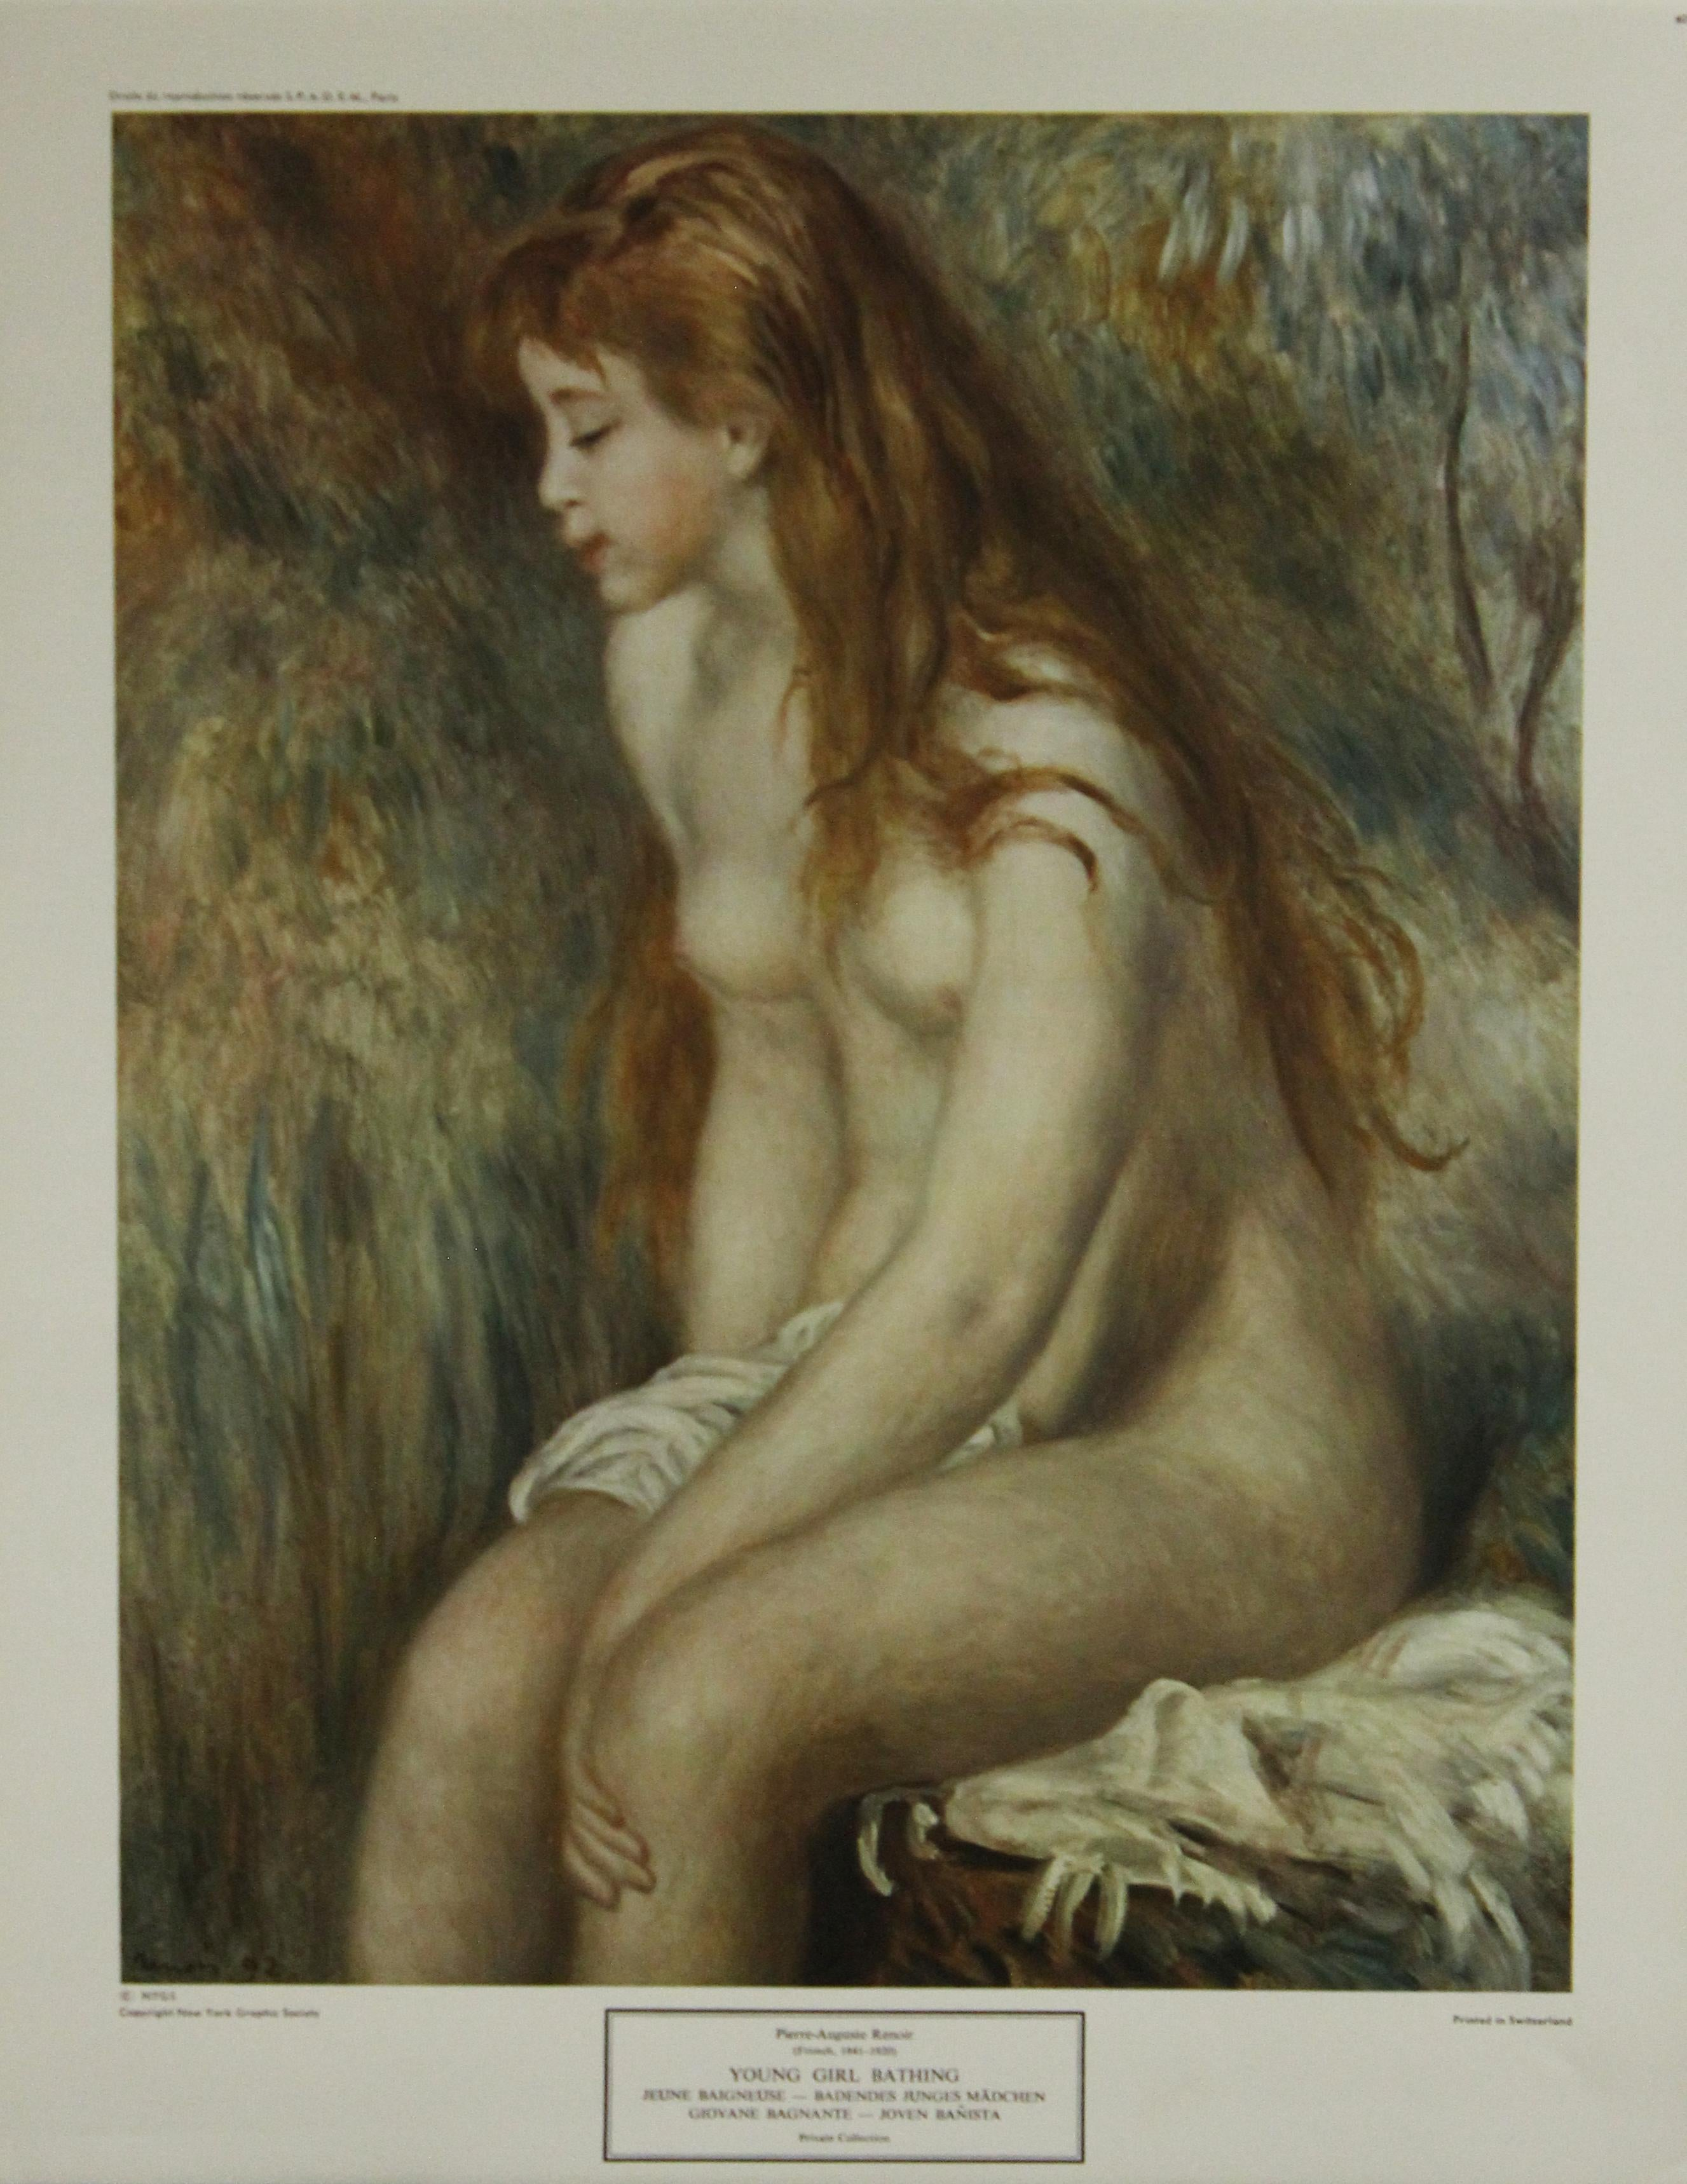 Young Girl Bathing-Poster. New York Graphic Society. Printed in Switzerland